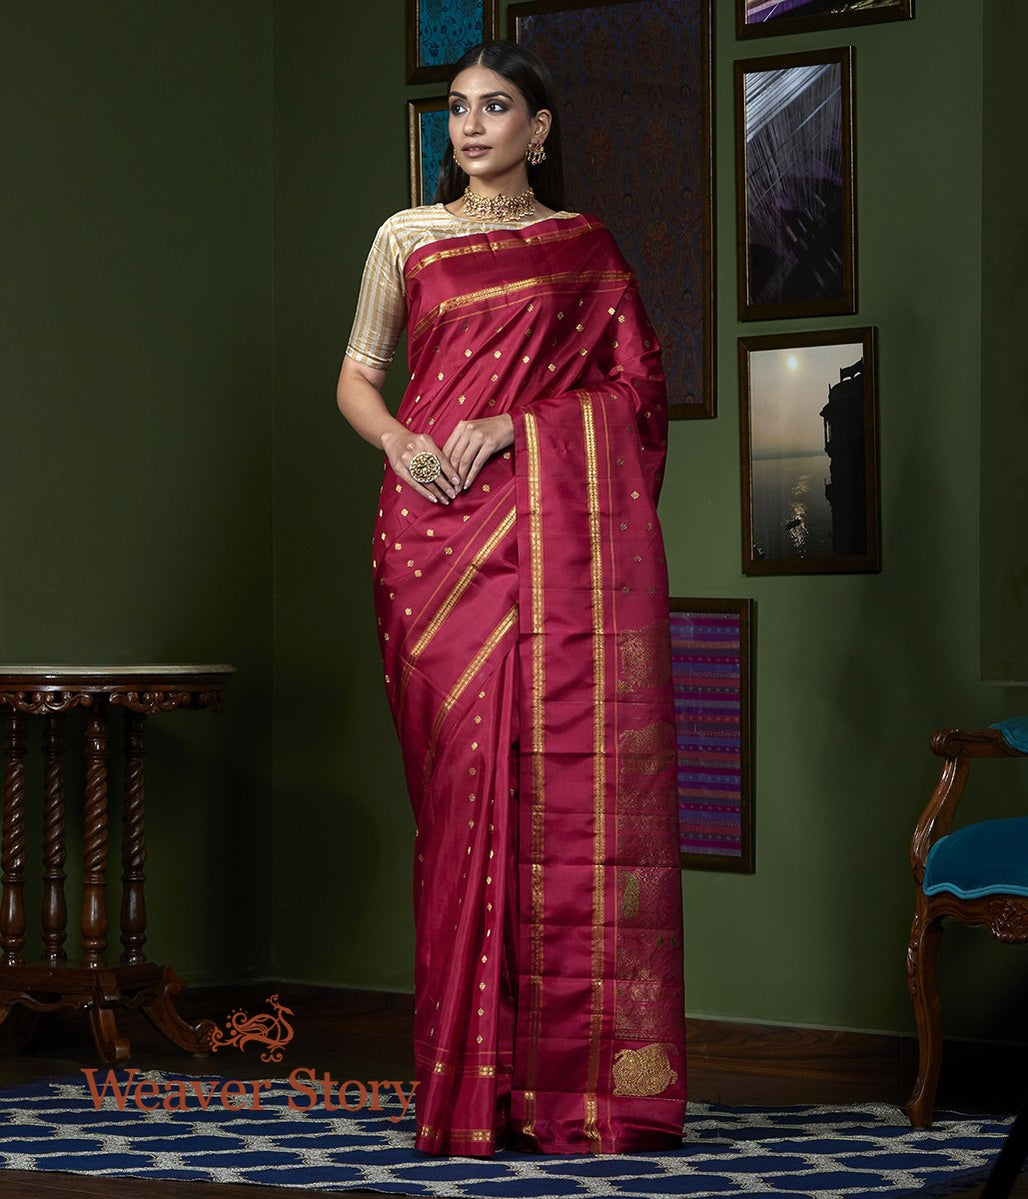 Handwoven Maroon Kanjivaram Saree with Bird Motifs